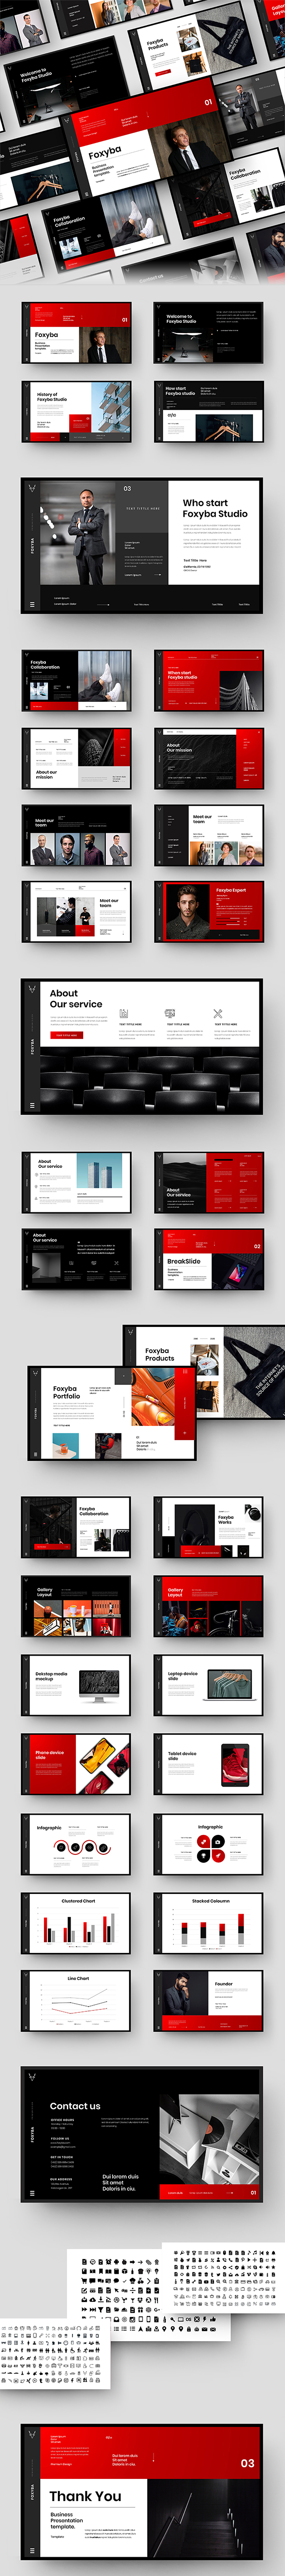 Foxyba – Business Google Slides Template